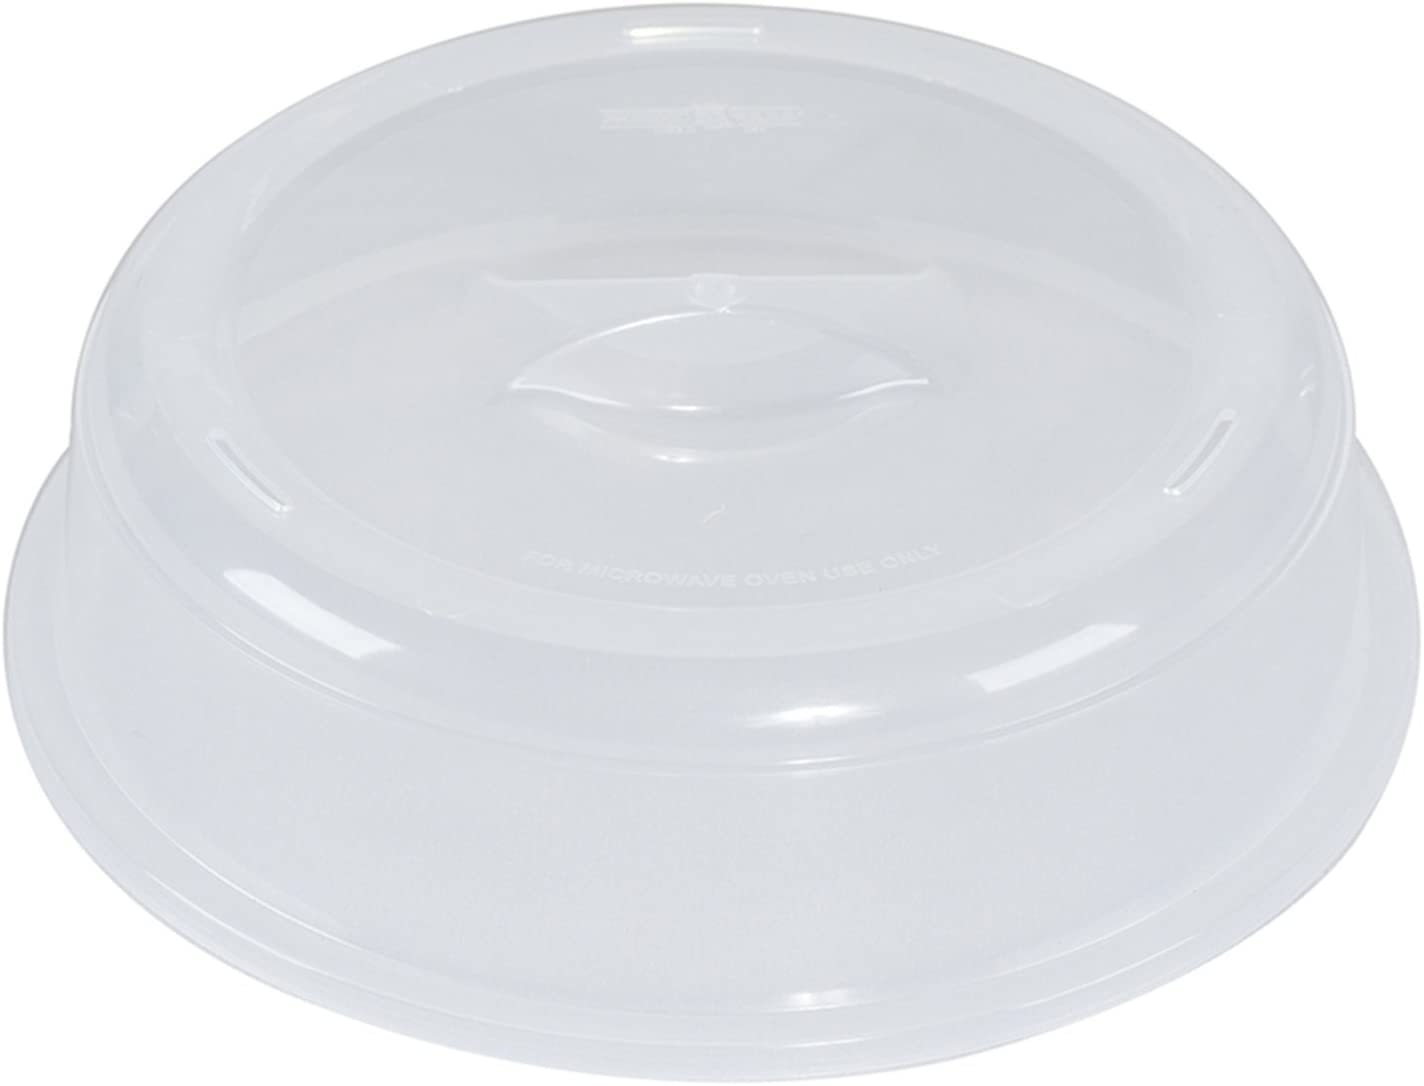 Nordic Ware Microondas Spatter Cover 2 Pack